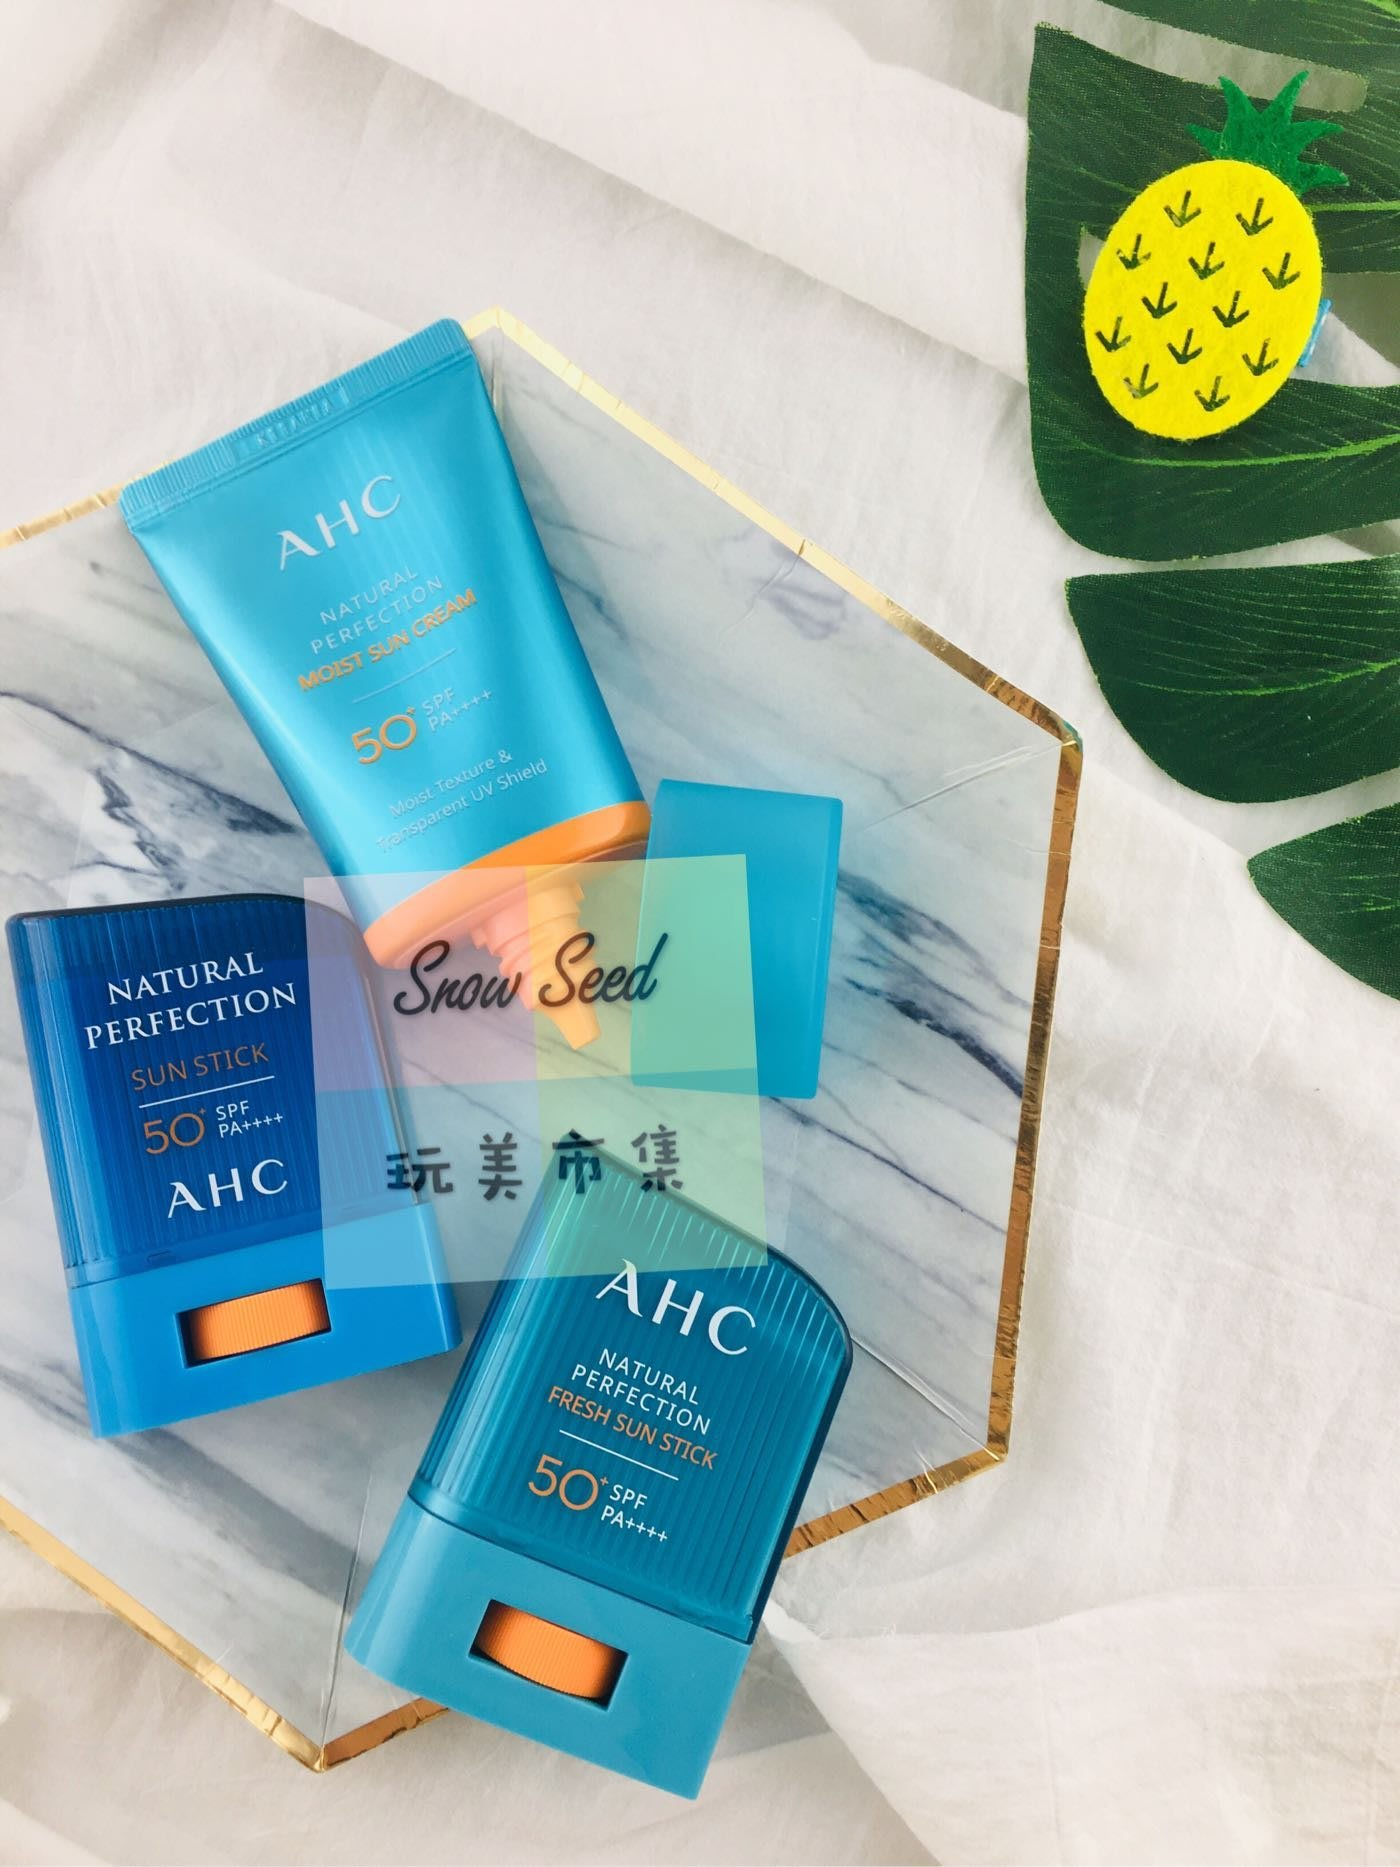 橙櫻韓國代購-AHC 天然完美防曬棒AHC Natural Perfection Fresh Sun Stick 14g